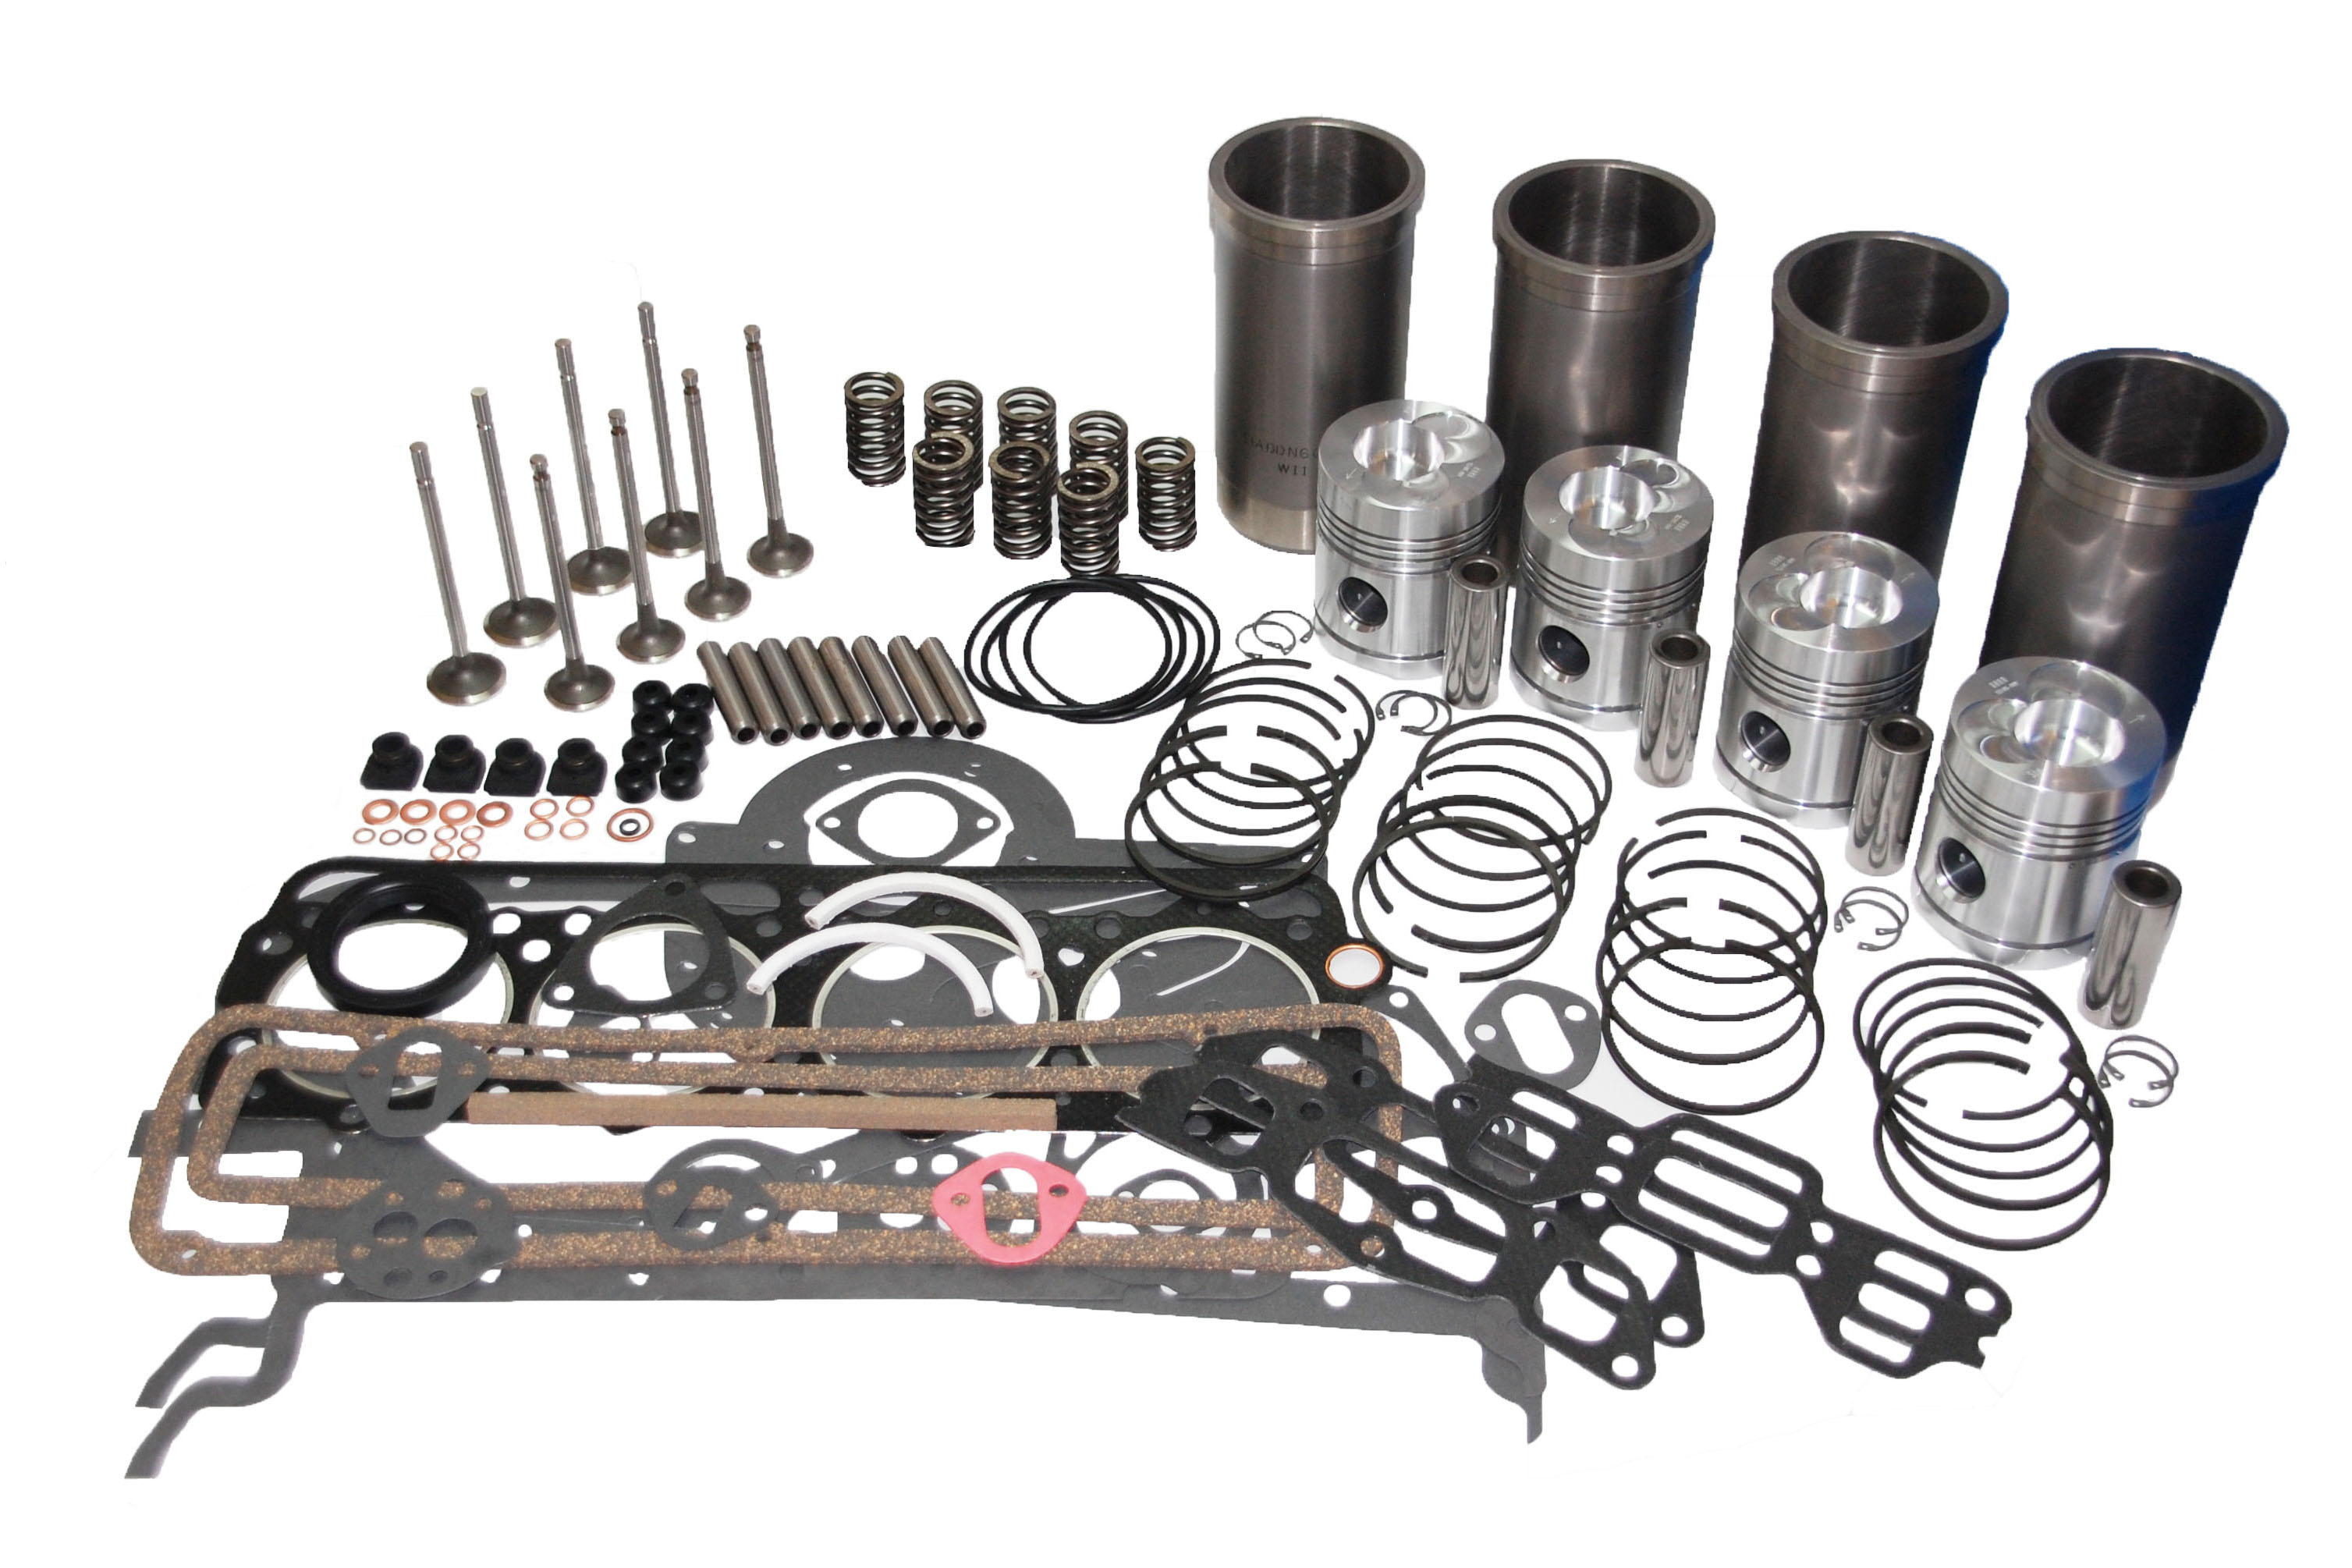 Victoryfield Tractor Parts - Engine Overhaul kit - MF35 & 135 with ...